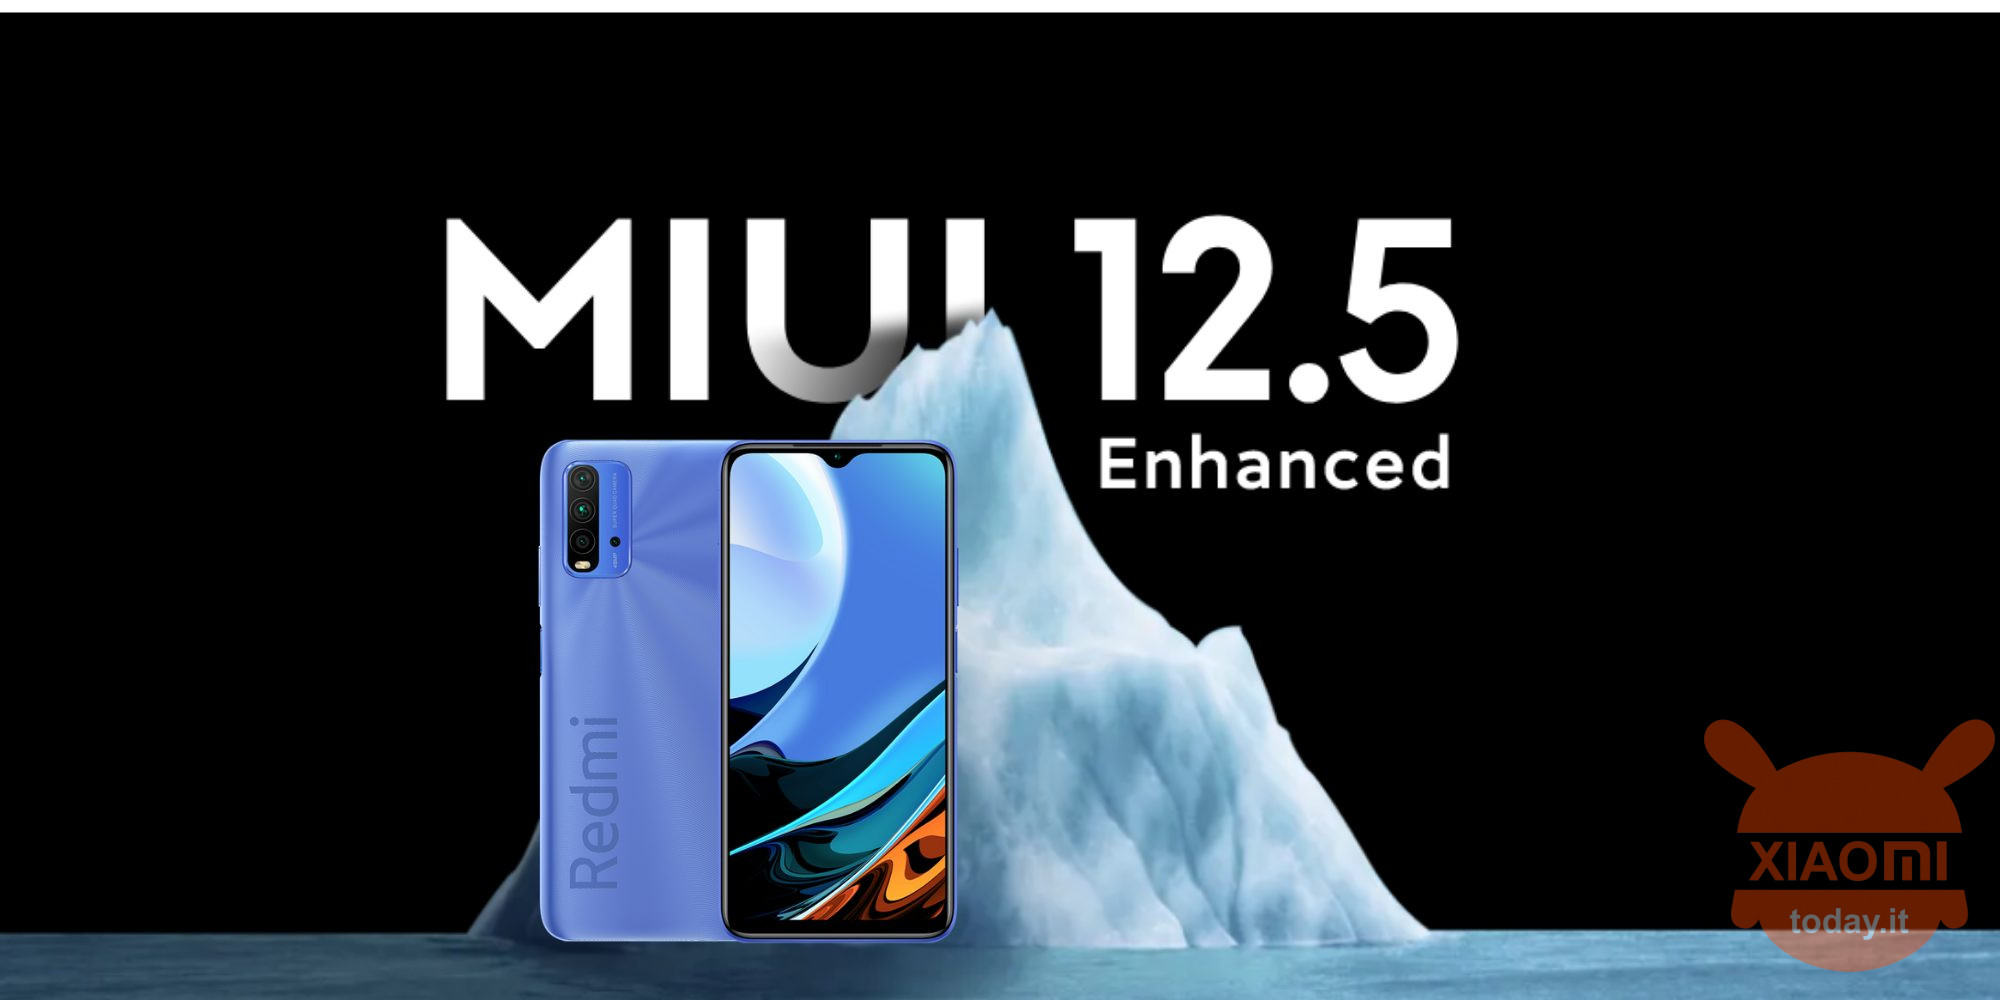 Redmi 9T gets updated to MIUI 12.5 Enhanced Global